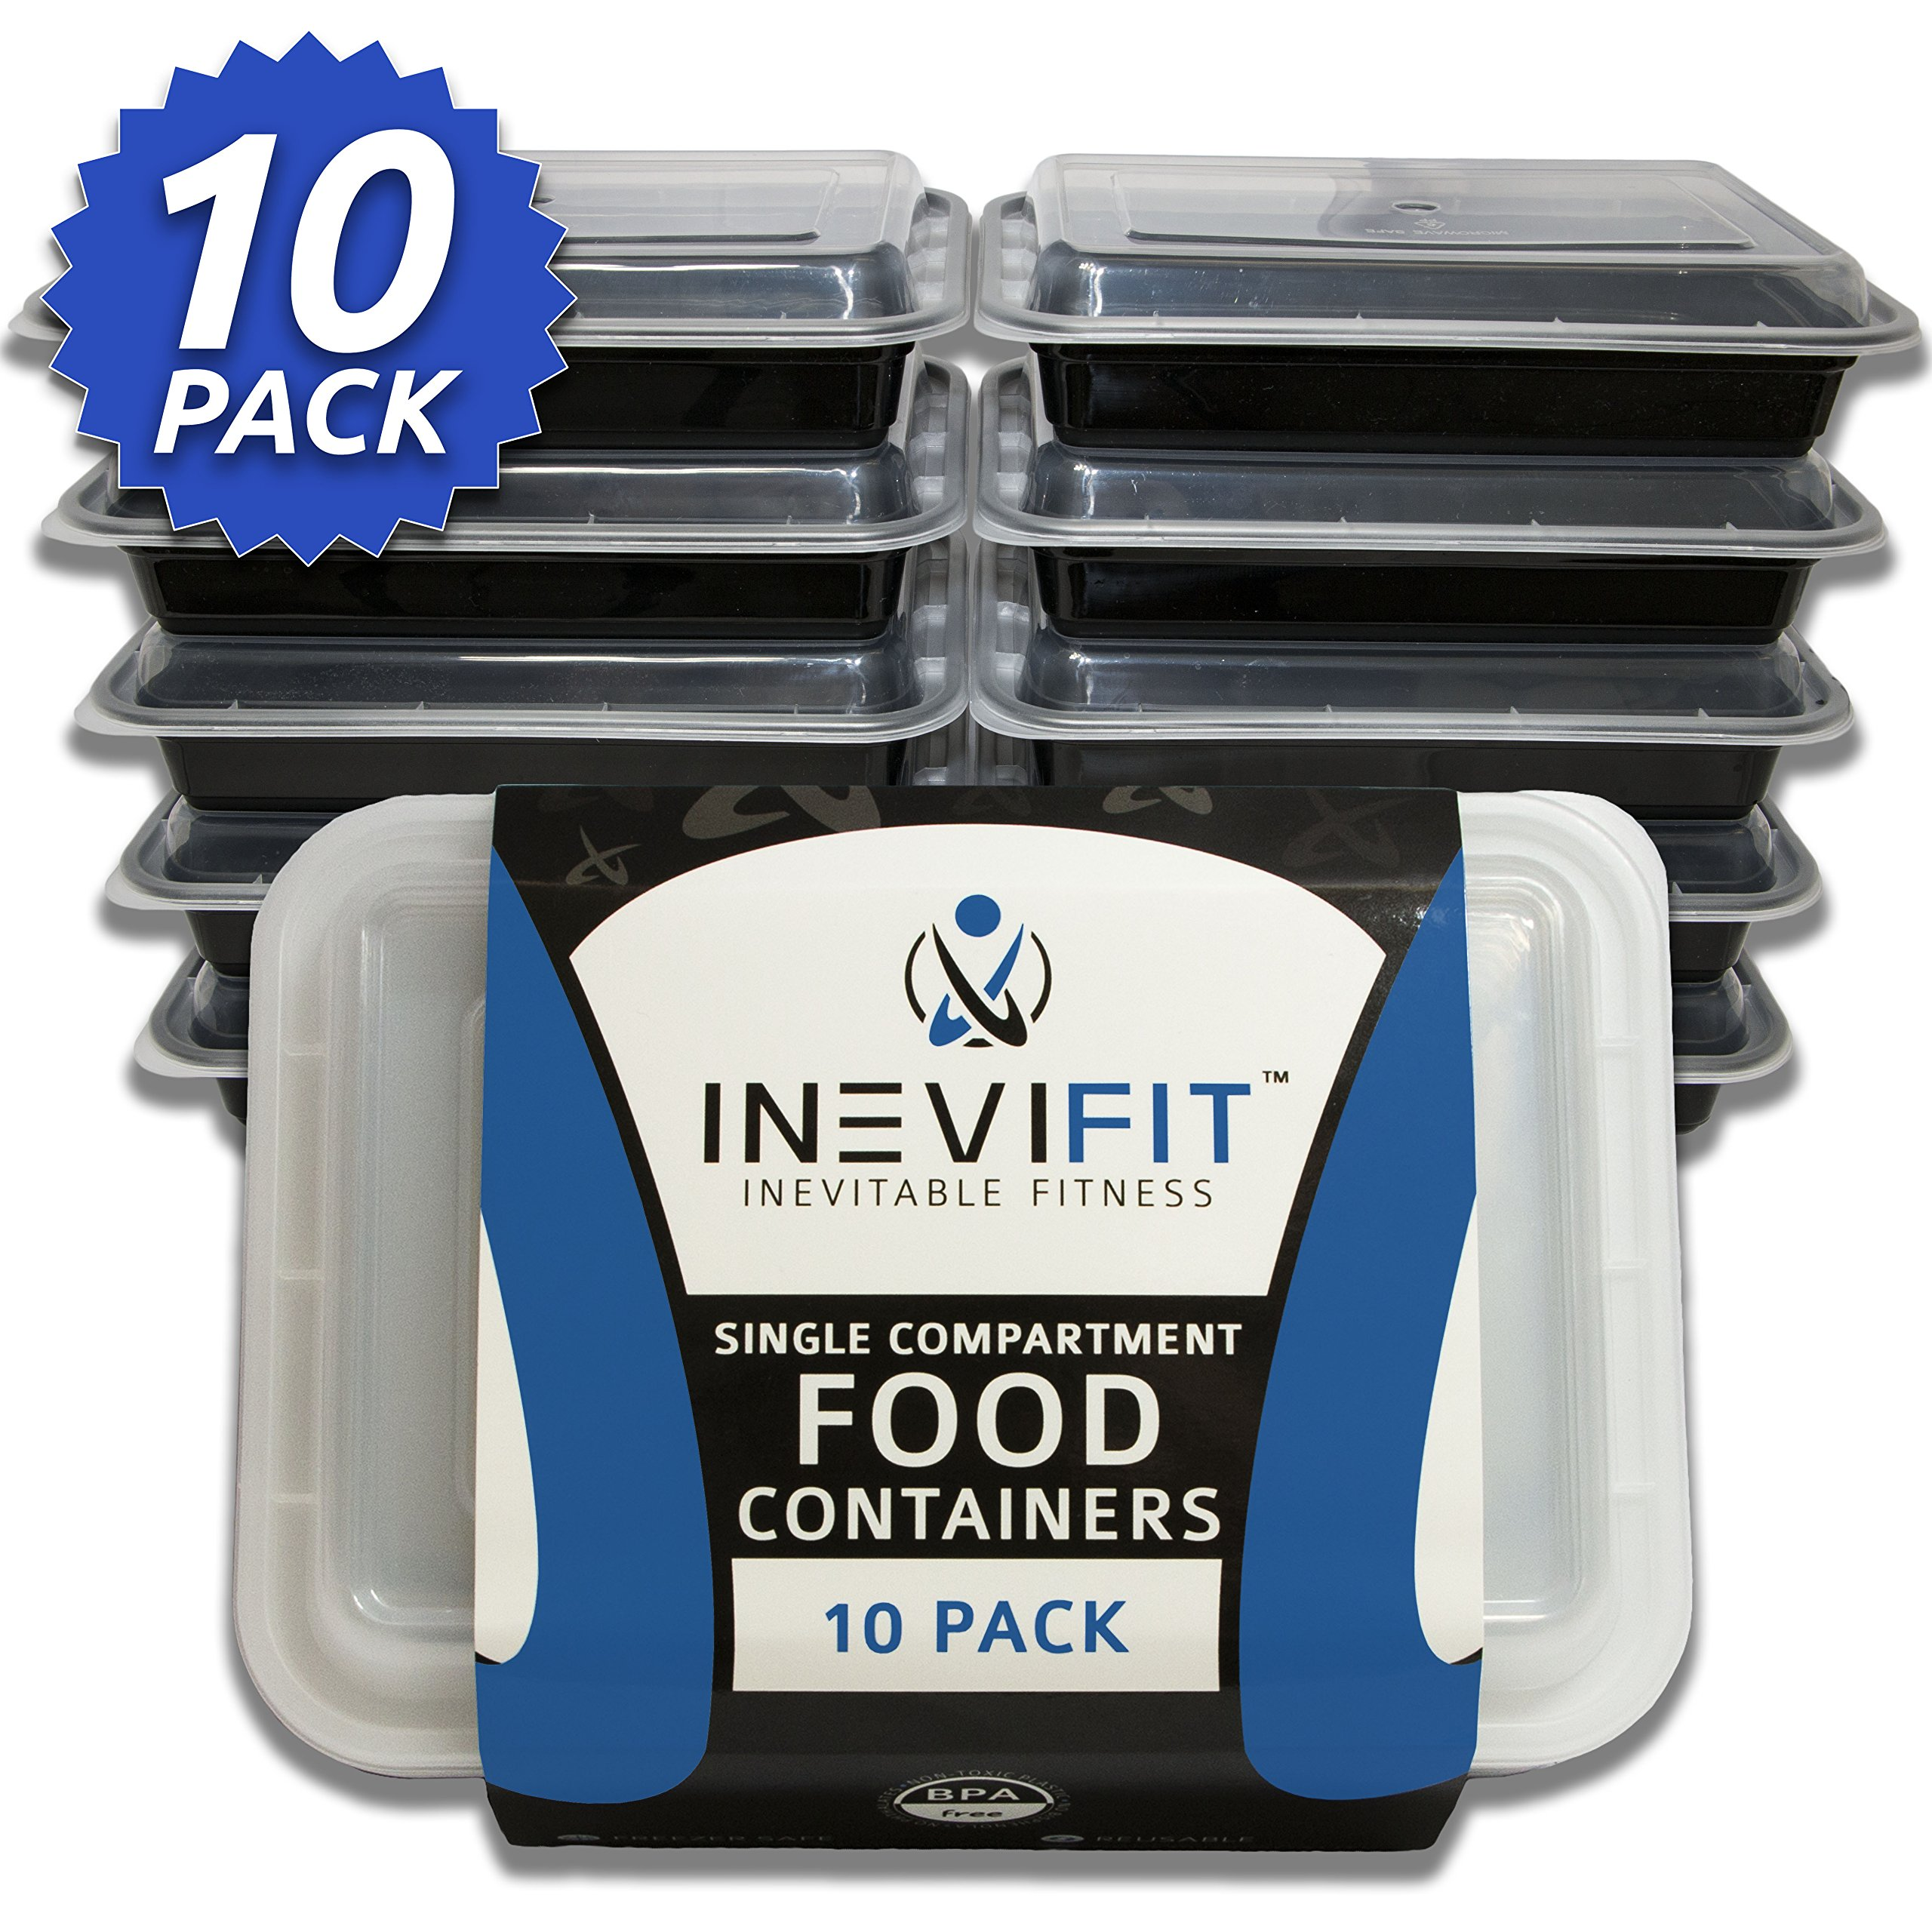 Inevifit Meal Prep Single Compartment Bpa Free Premium Food Storage Container.. 18